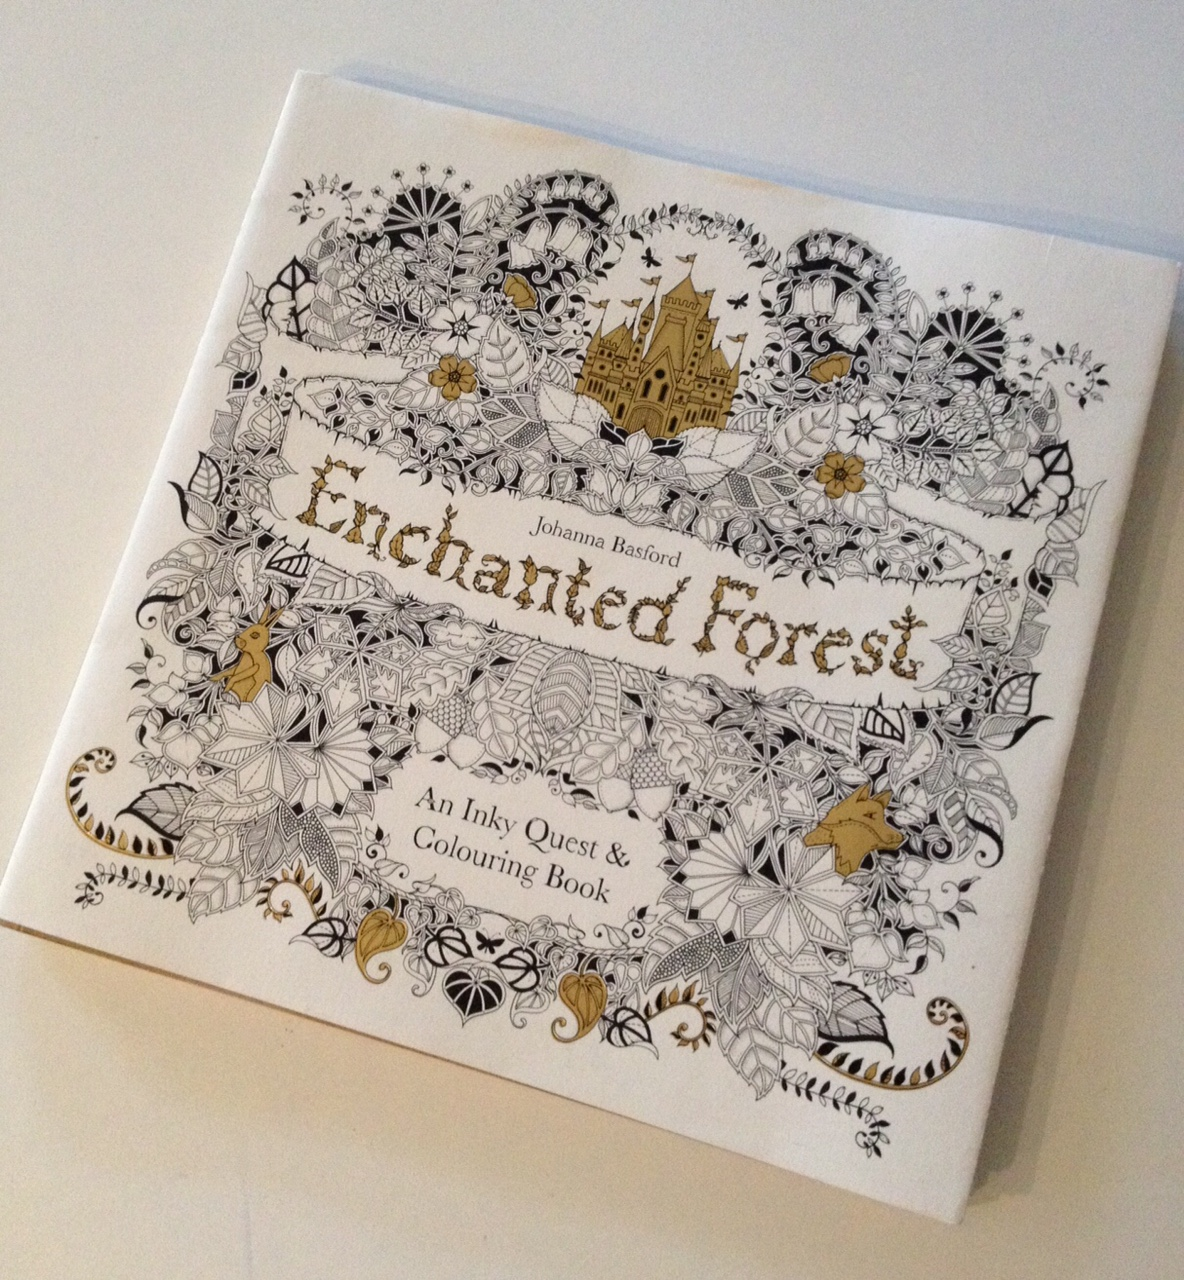 The enchanted forest coloring book review - Enchanted Forest Gift Grapevine Kid S Book Review